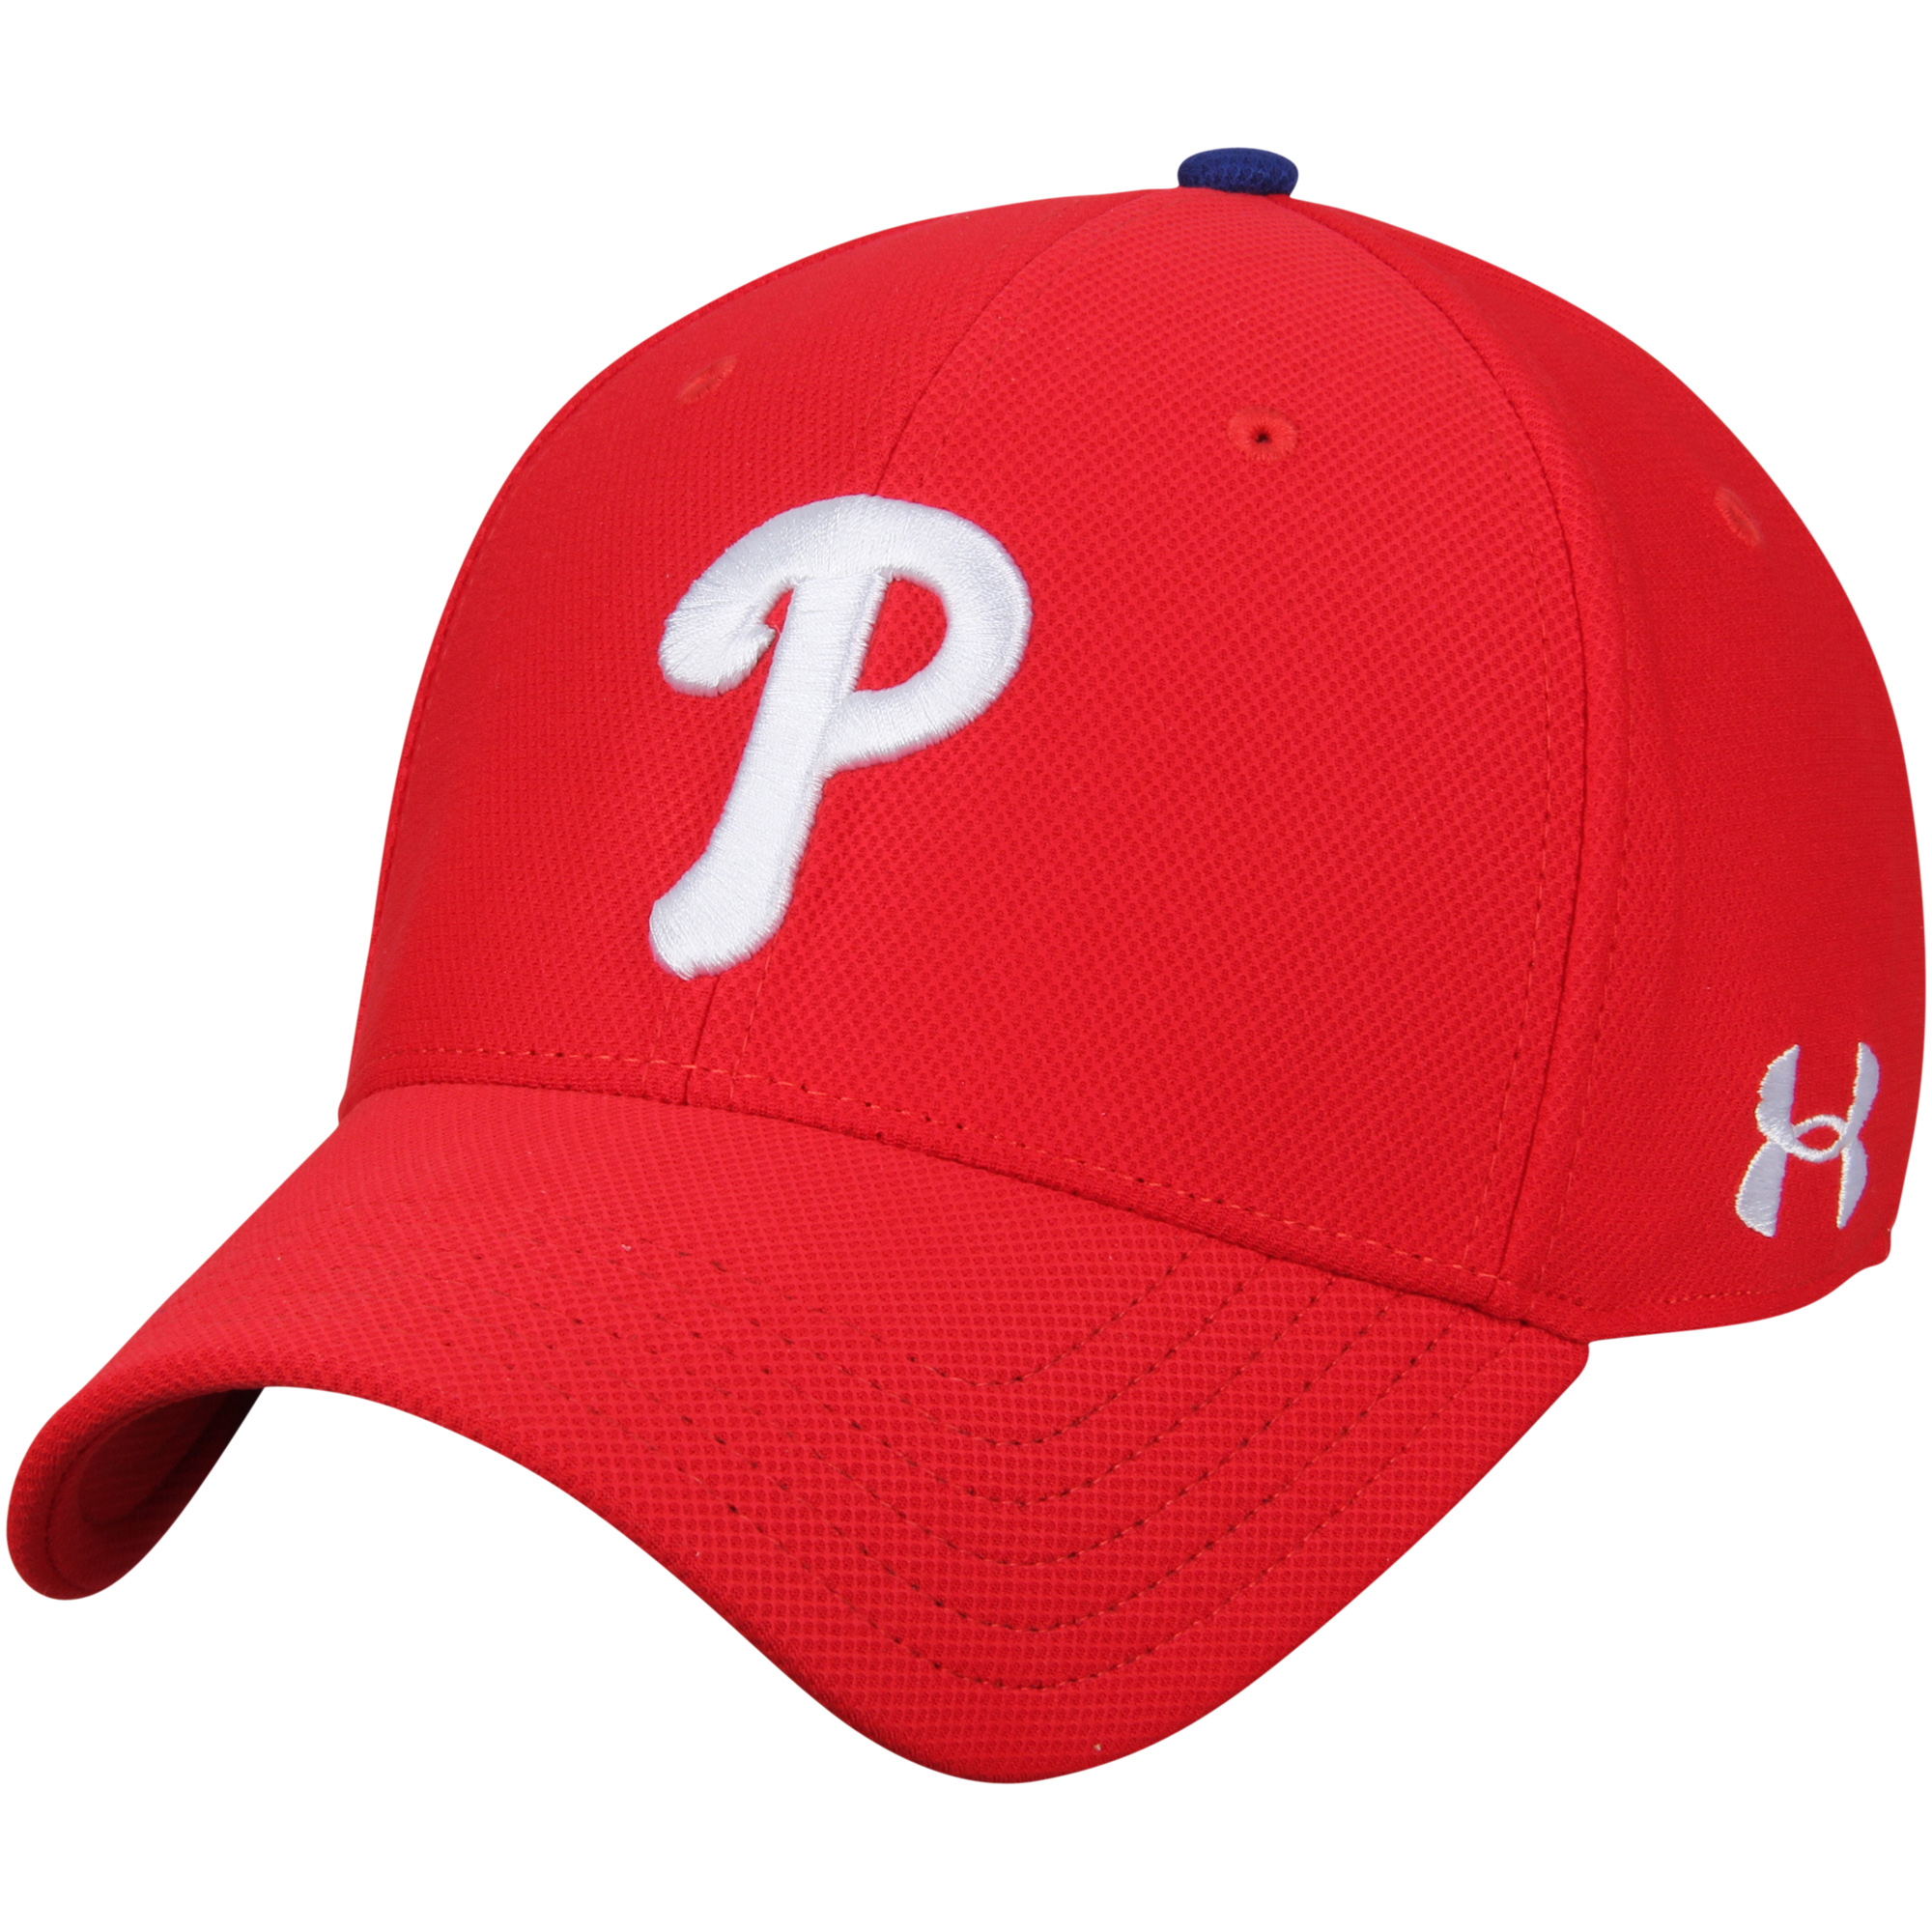 Philadelphia Phillies Under Armour Blitzing Performance Adjustable Hat - Red - OSFA